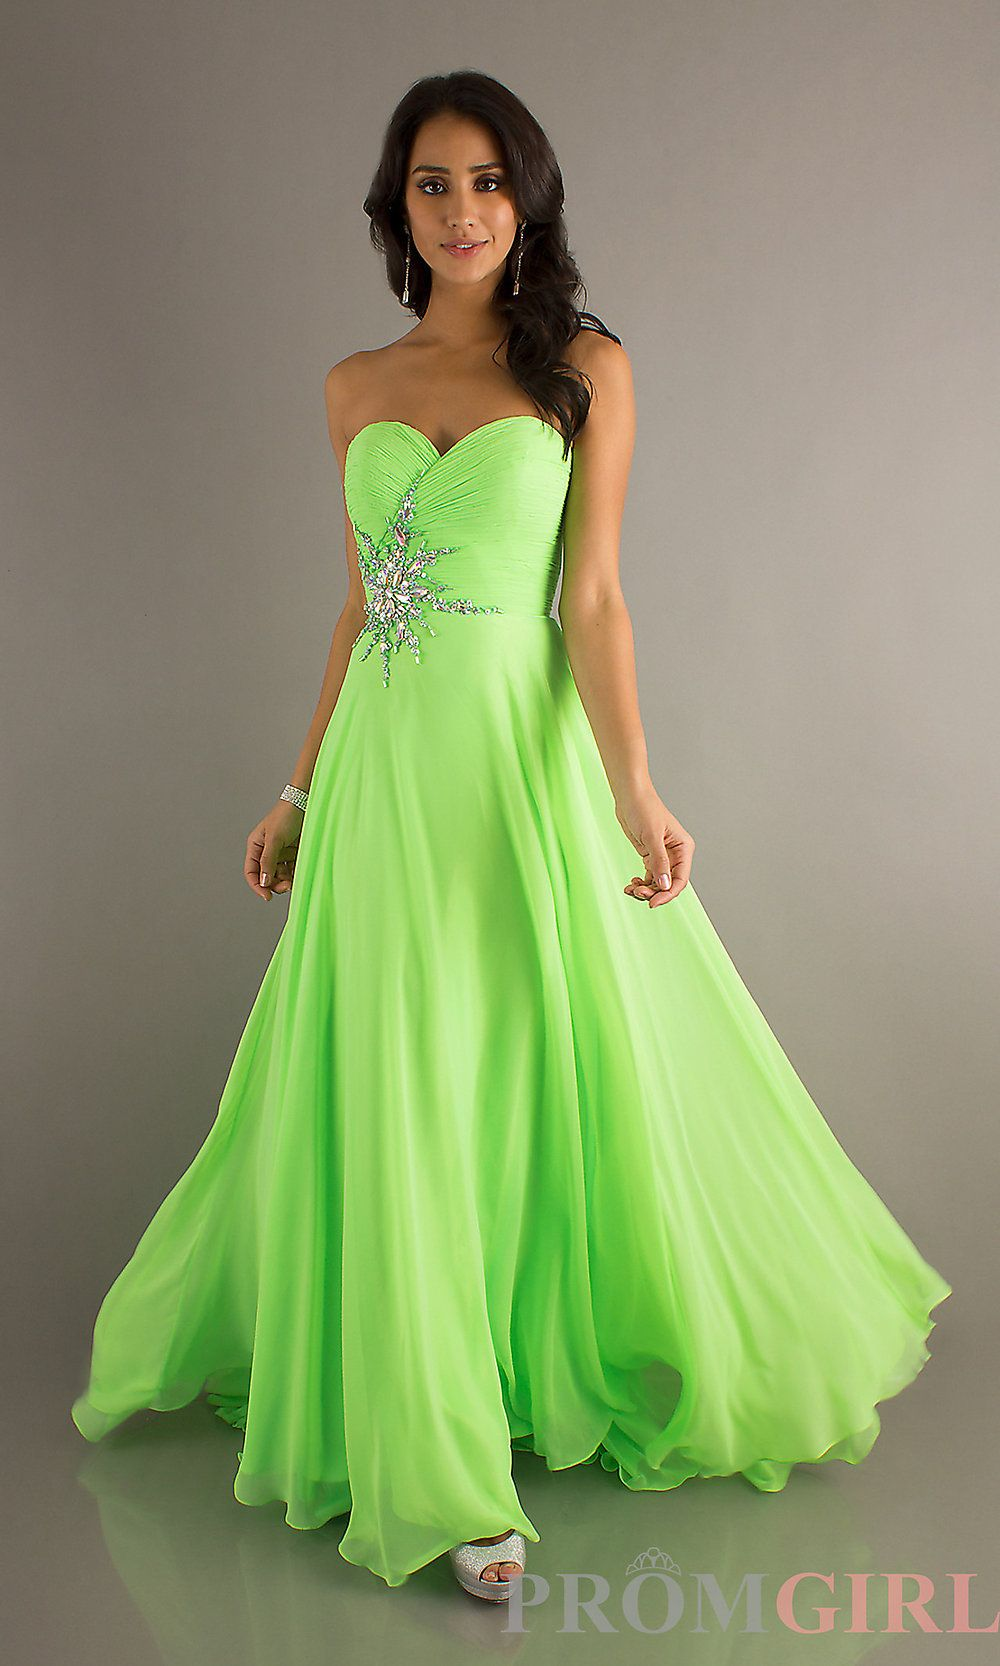 Lime green bridesmaid dresses dress style cr 13550 vfrontview lime green bridesmaid dresses dress style cr 13550 vfrontview ombrellifo Choice Image